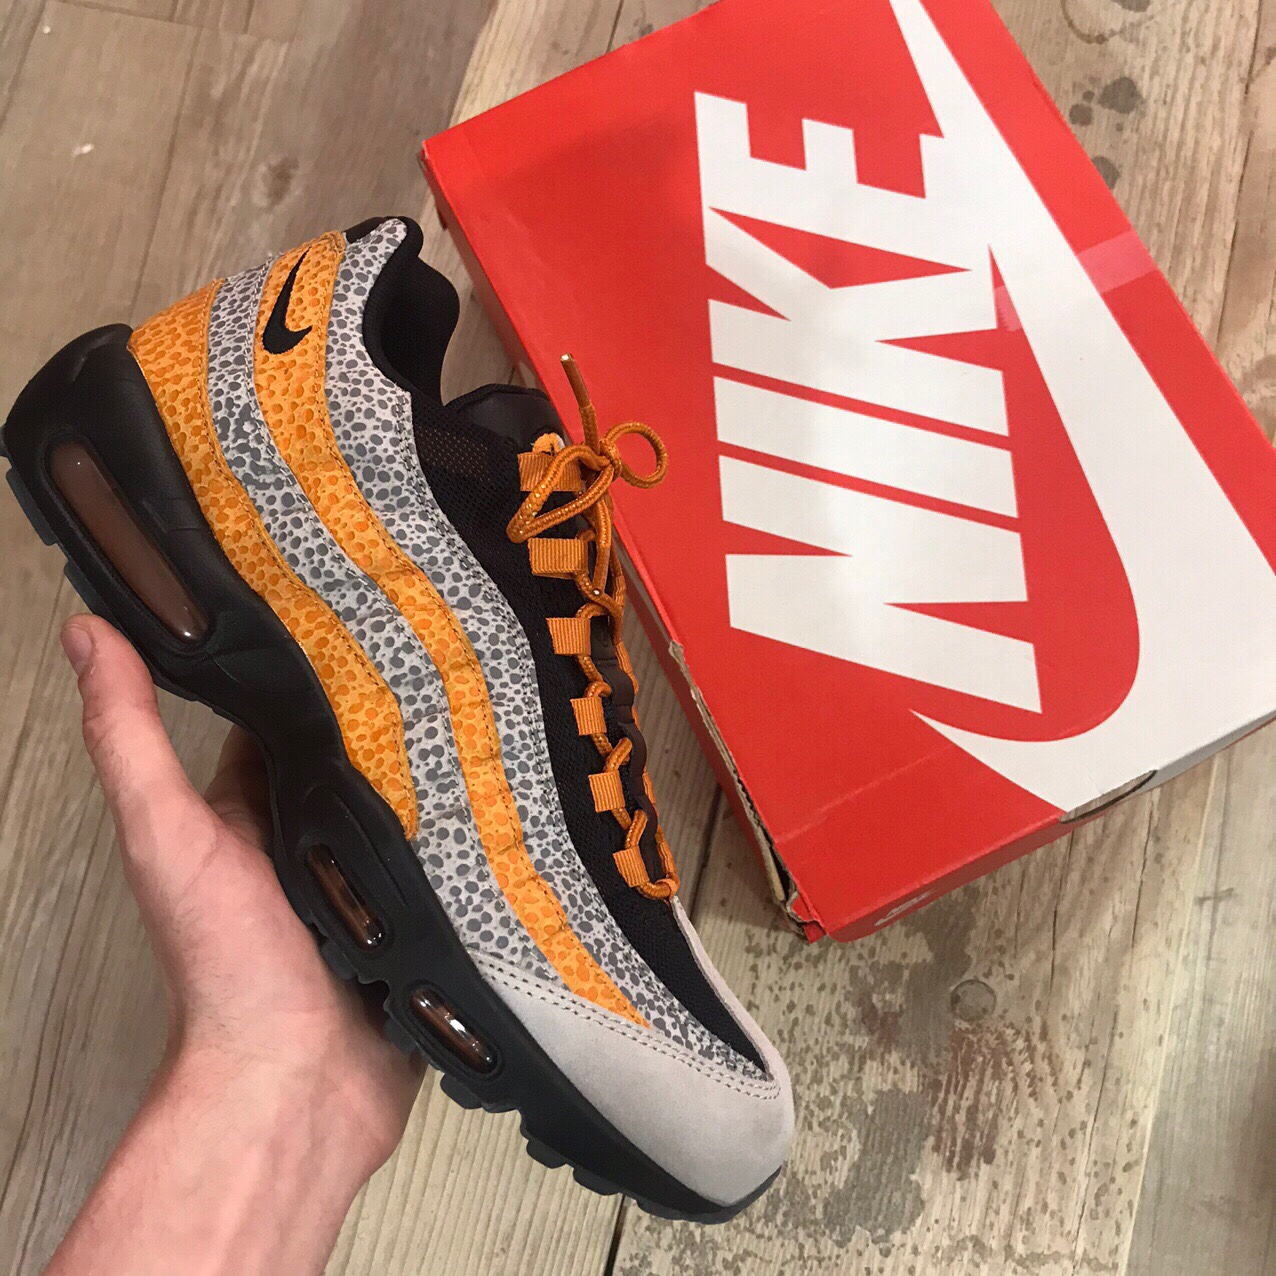 bomba Increíble Ingenioso  Nike Air Max 95 Safari Size? 2018 Brand new with... - Depop